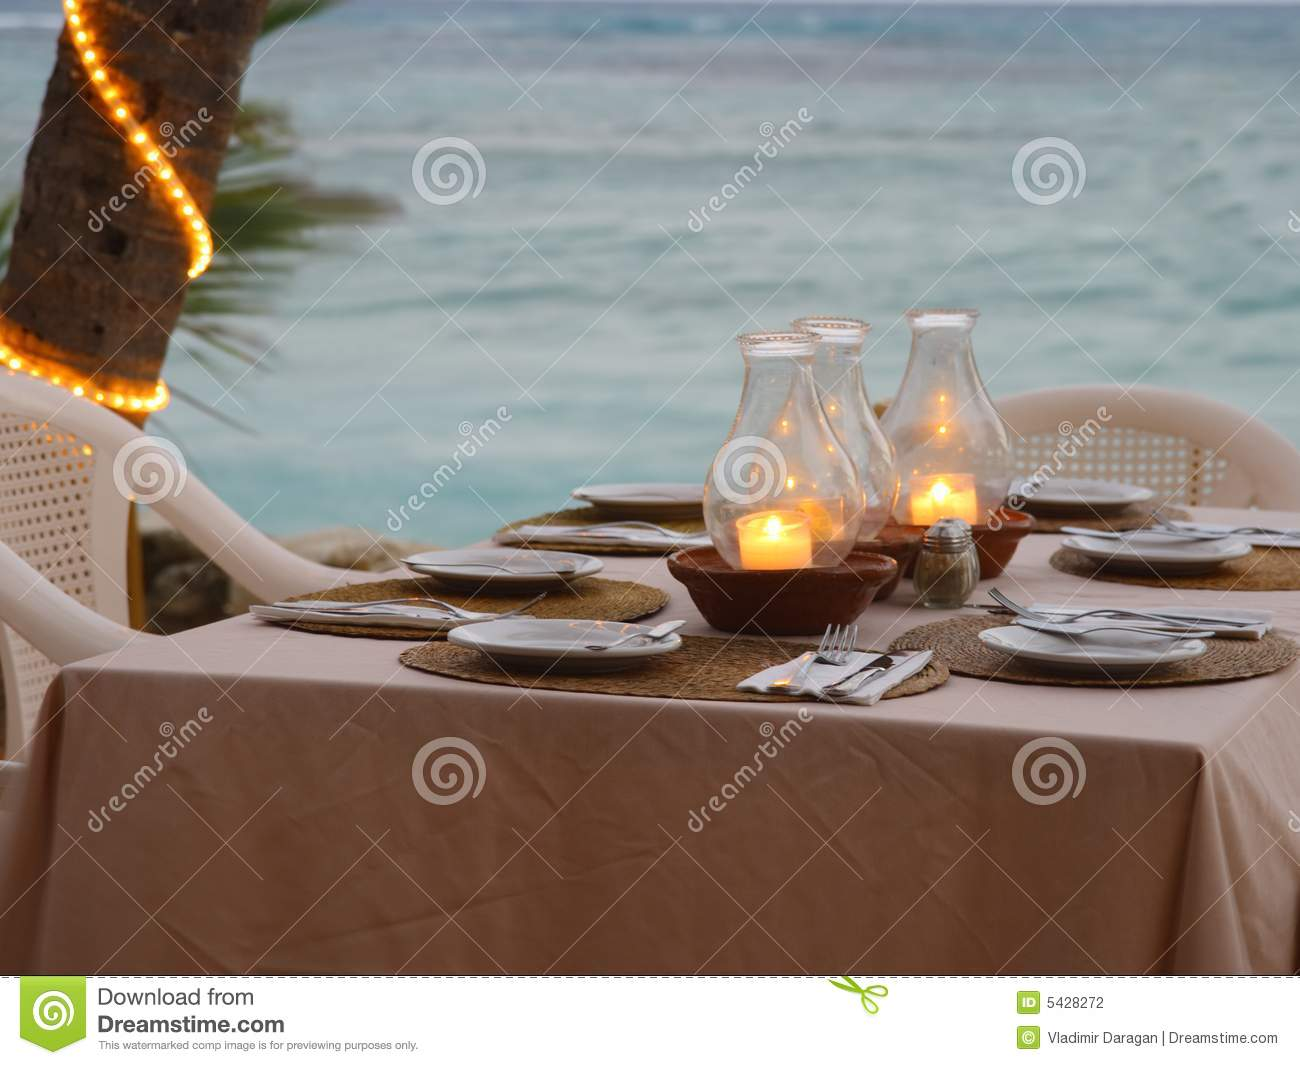 Restaurant confortable de plage